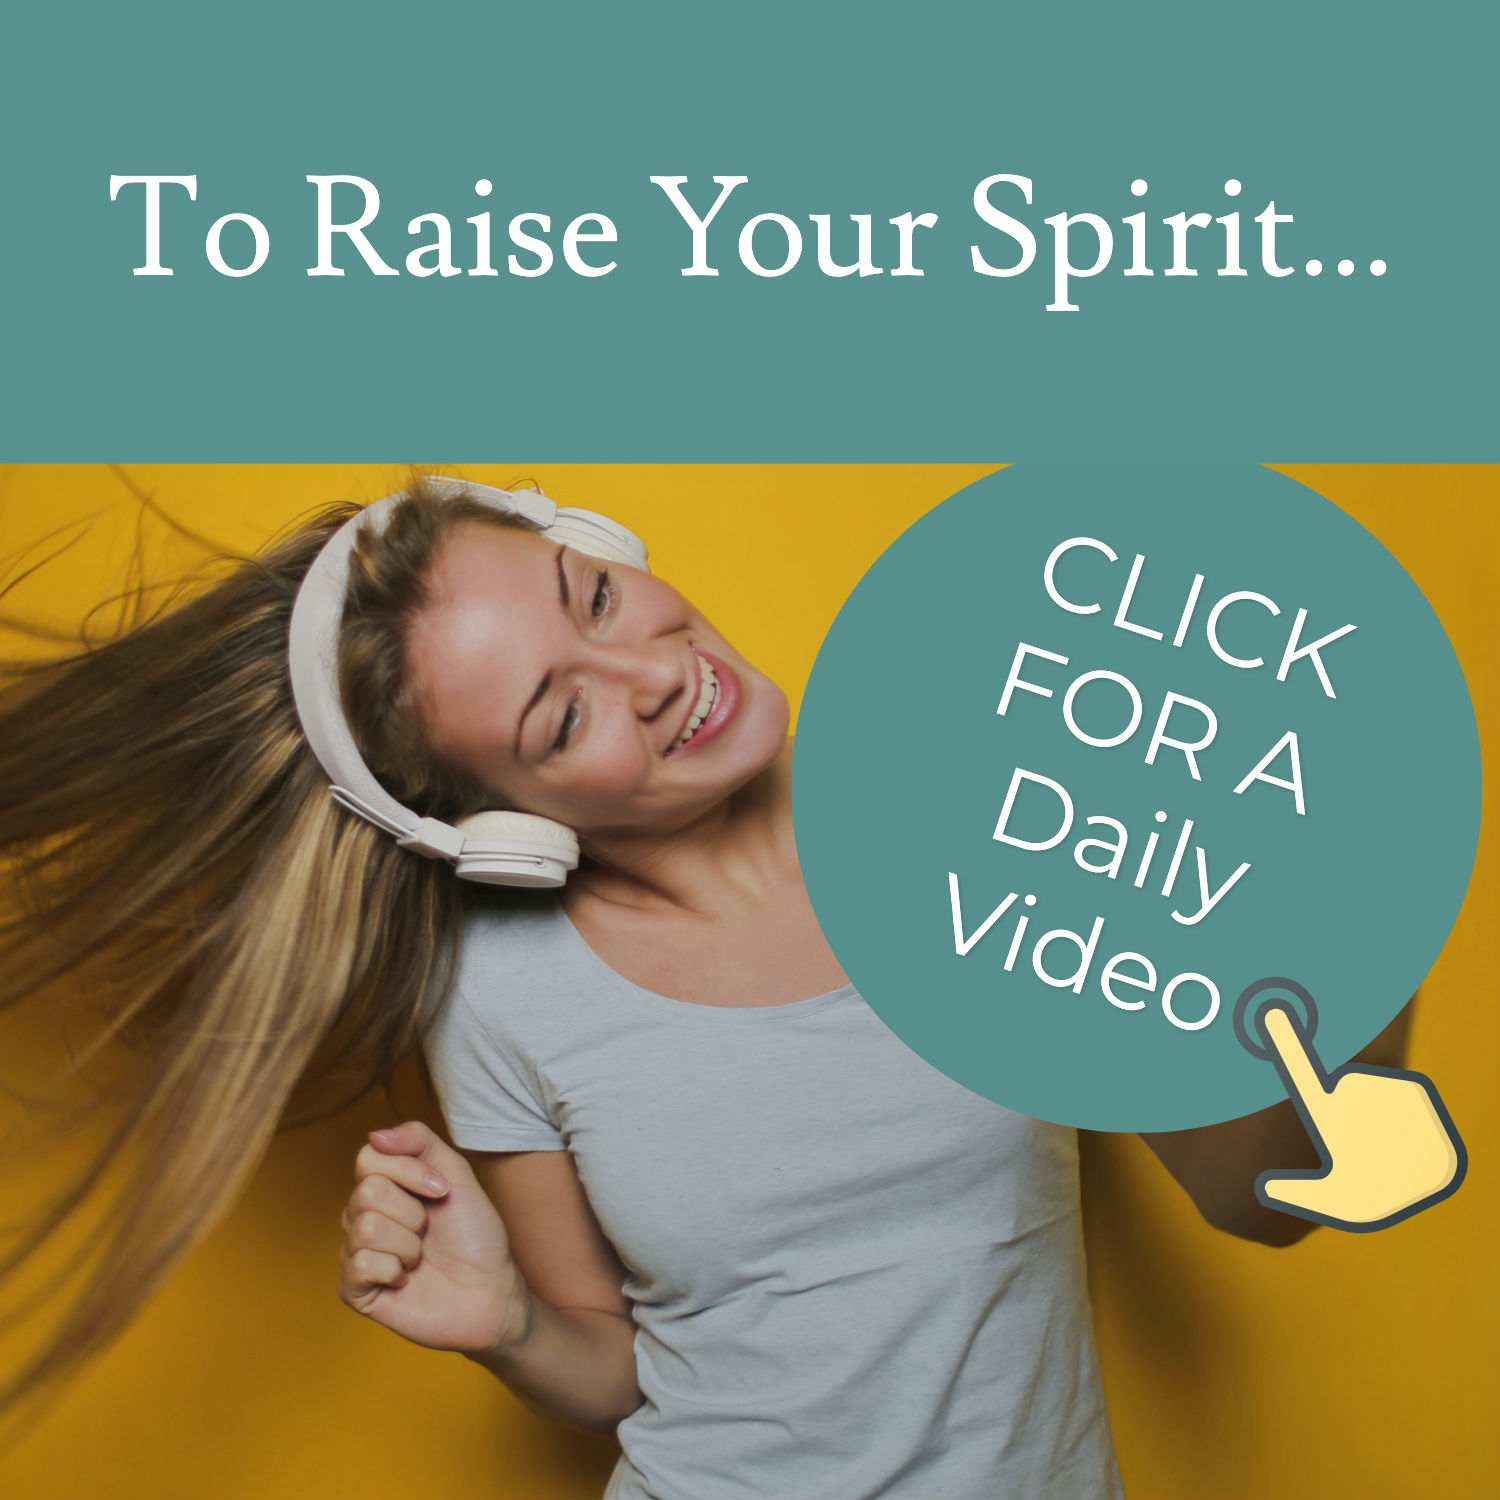 Raise Our Spirit By Sharing A New Daily Video